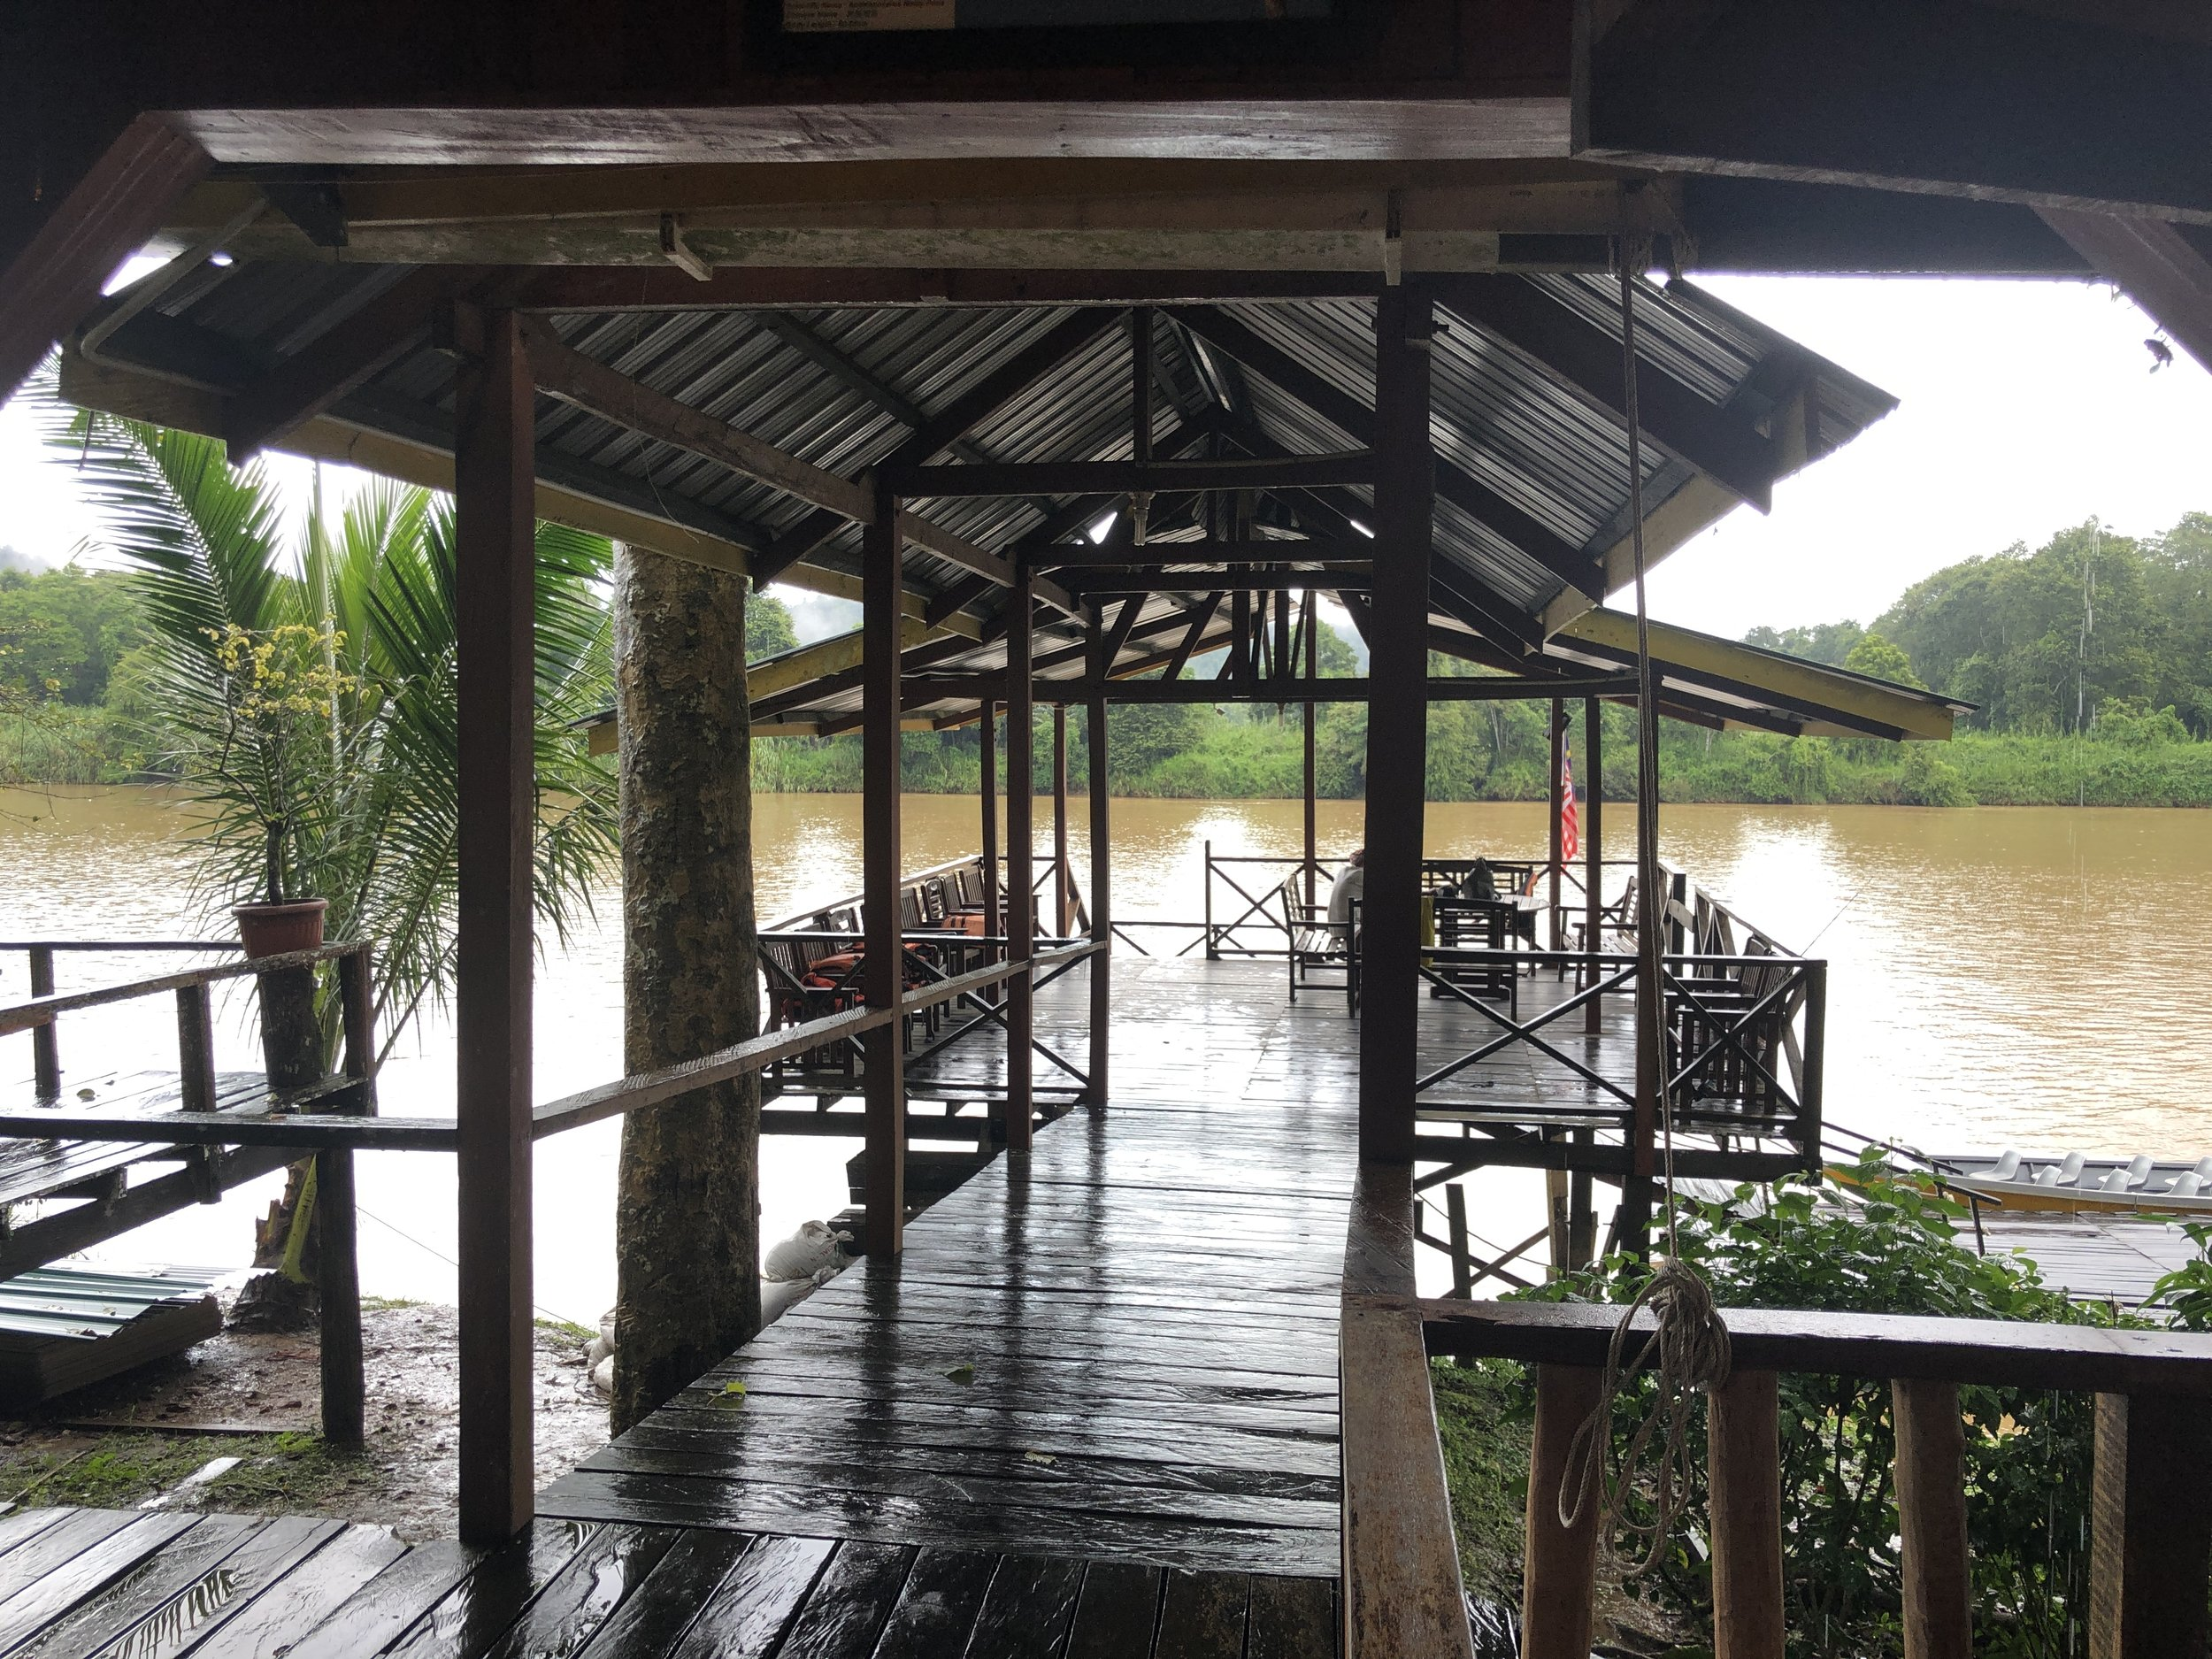 Bilit Lodge, River Kinabatangan